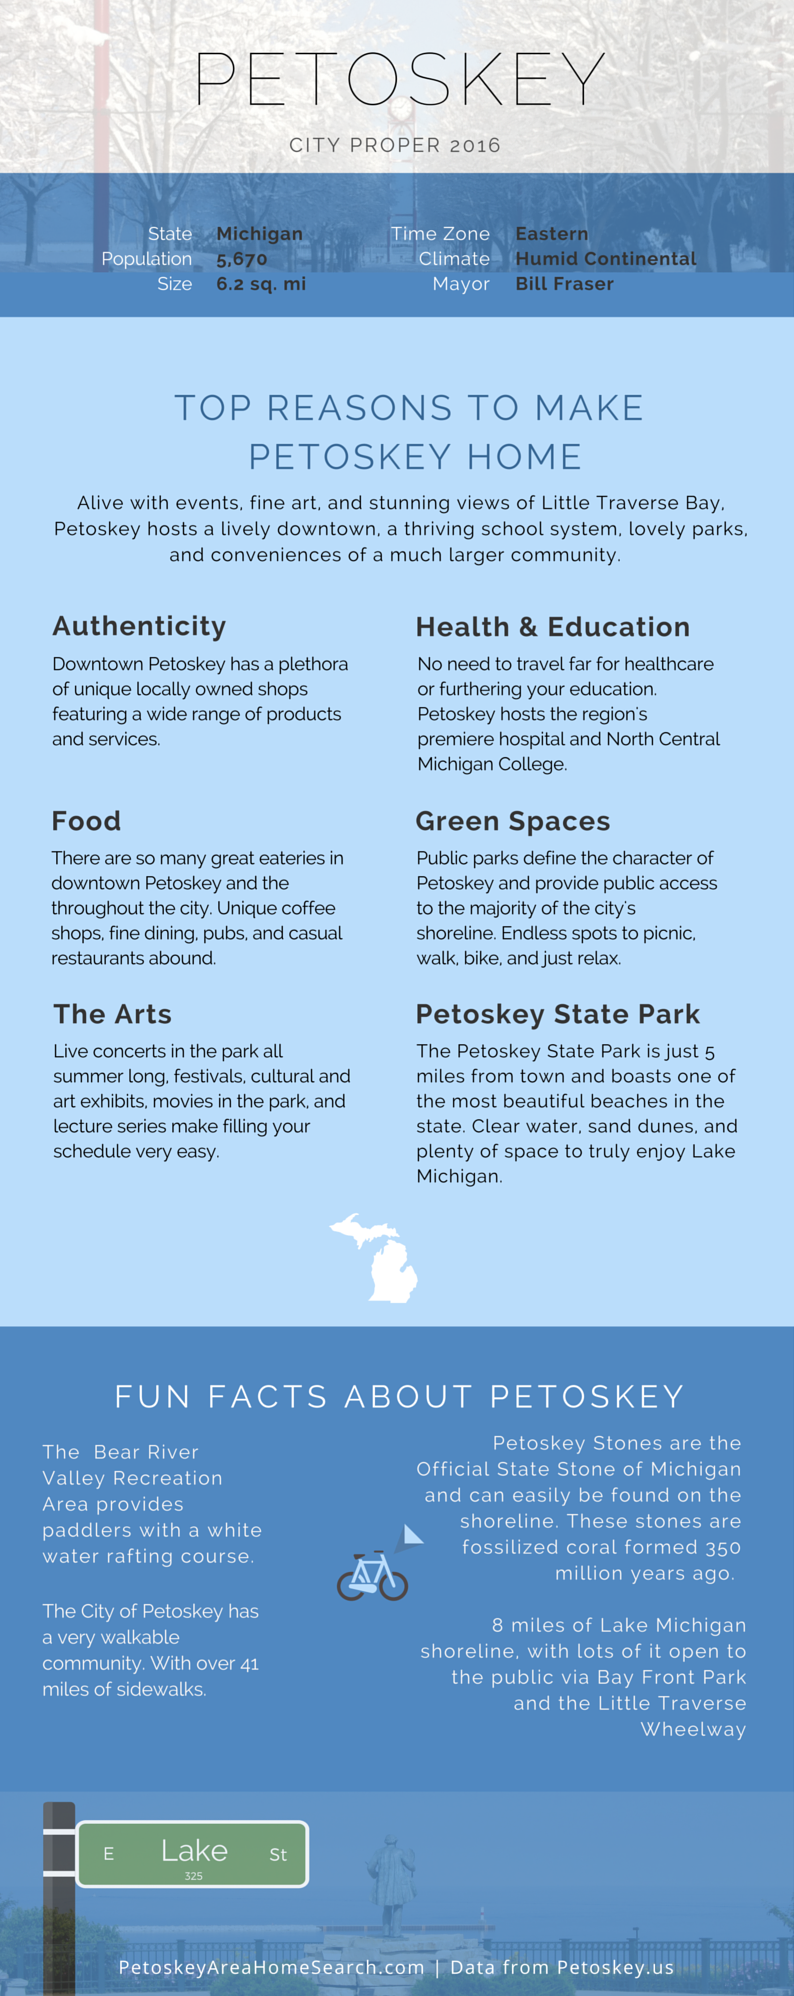 Petoskey Infographic